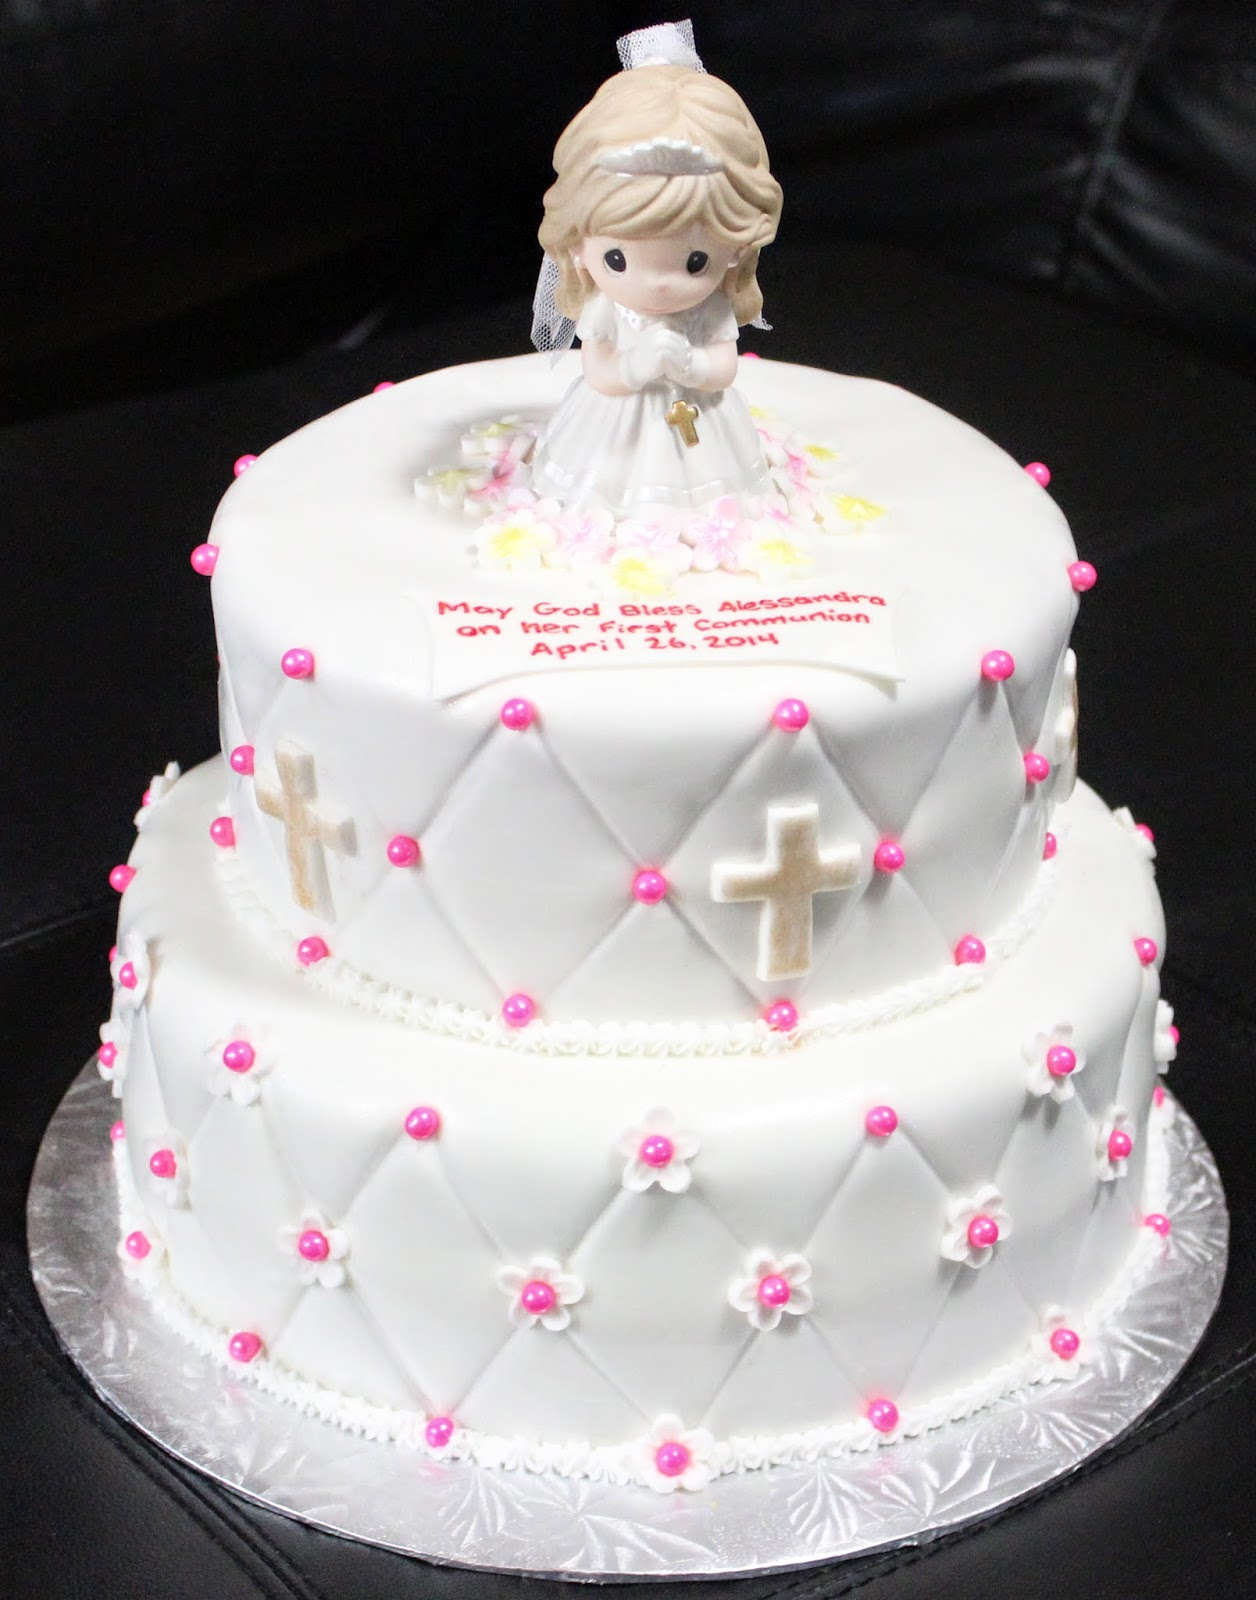 Love Dem Goodies: First Communion Cake